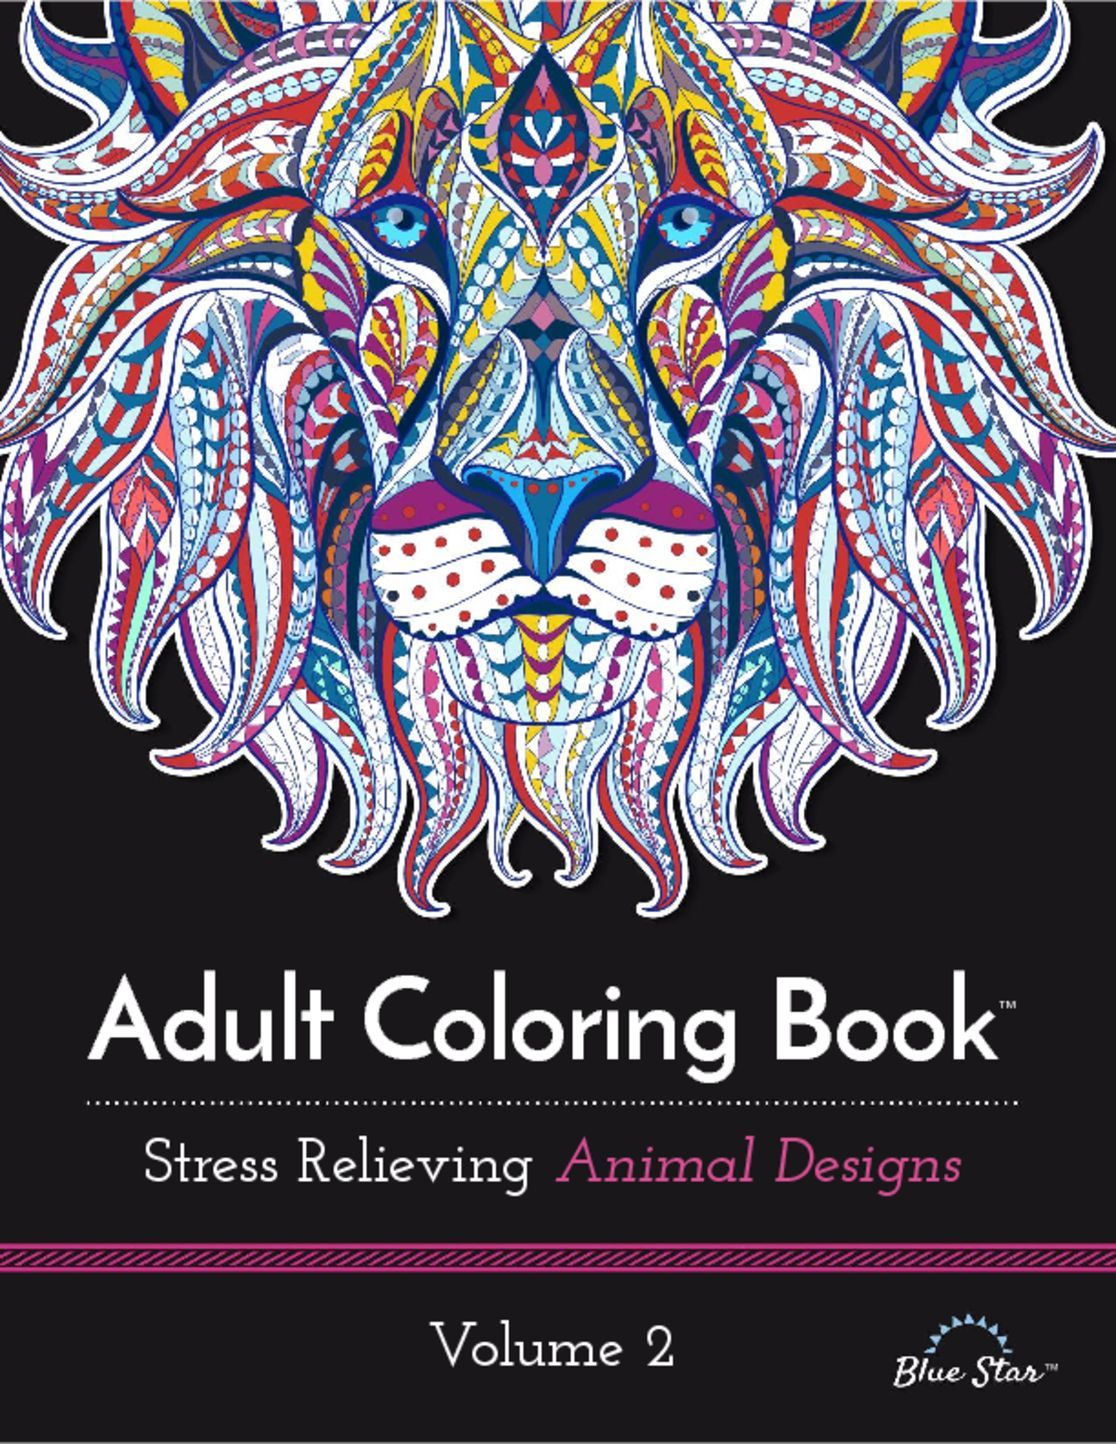 Adult Coloring Book Stress Relieving Animal Designs Volume 2 Digital